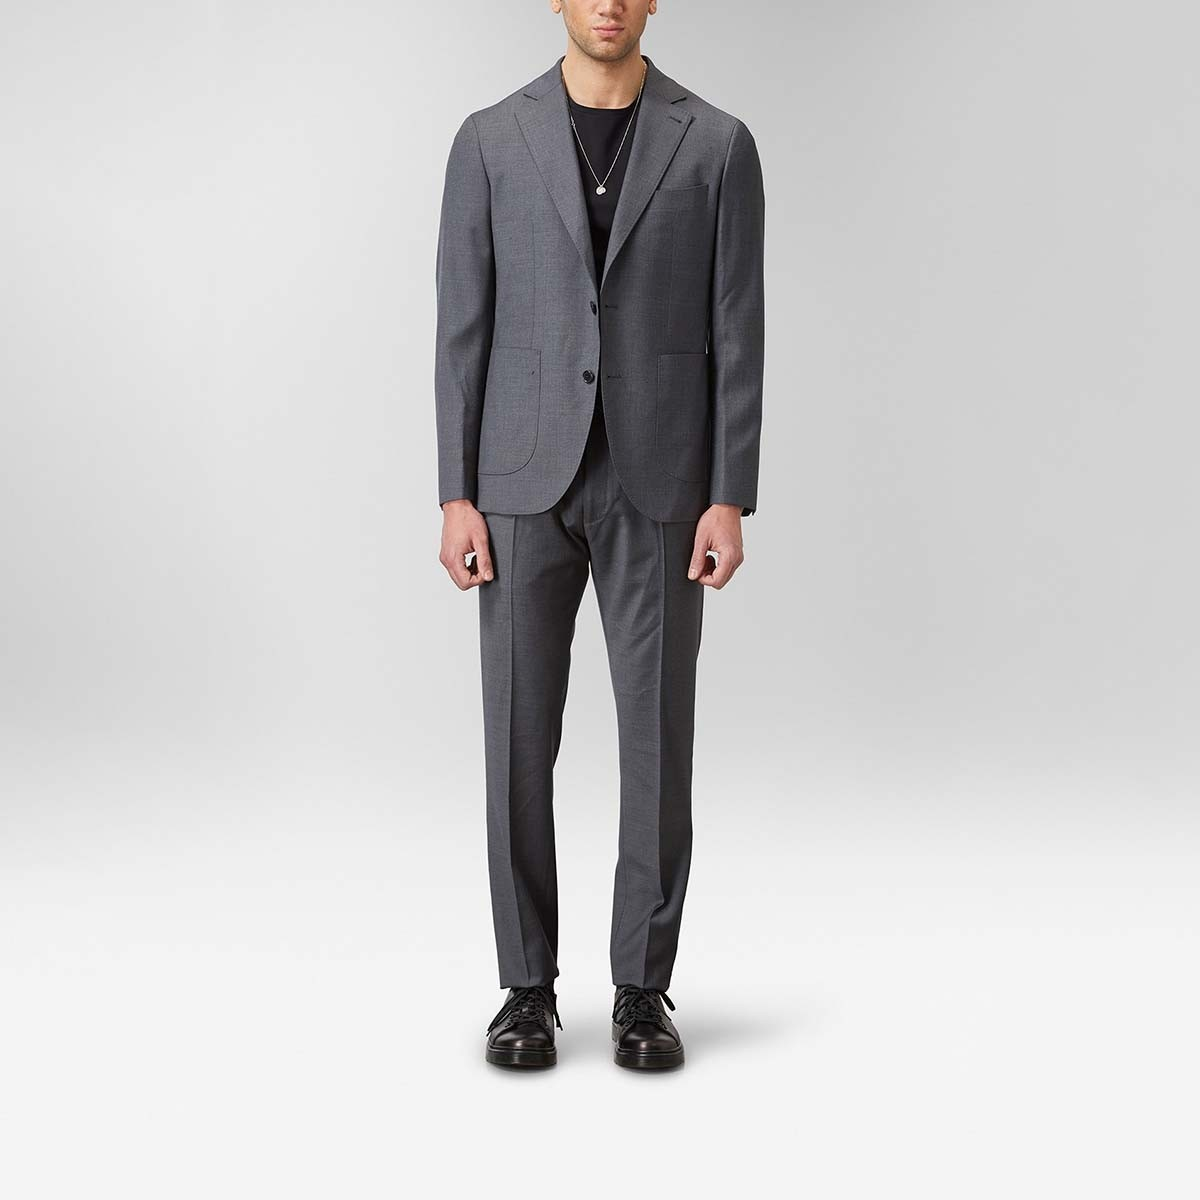 Miller Twill Kostym Grå   The Tailoring Club   Brothers.se